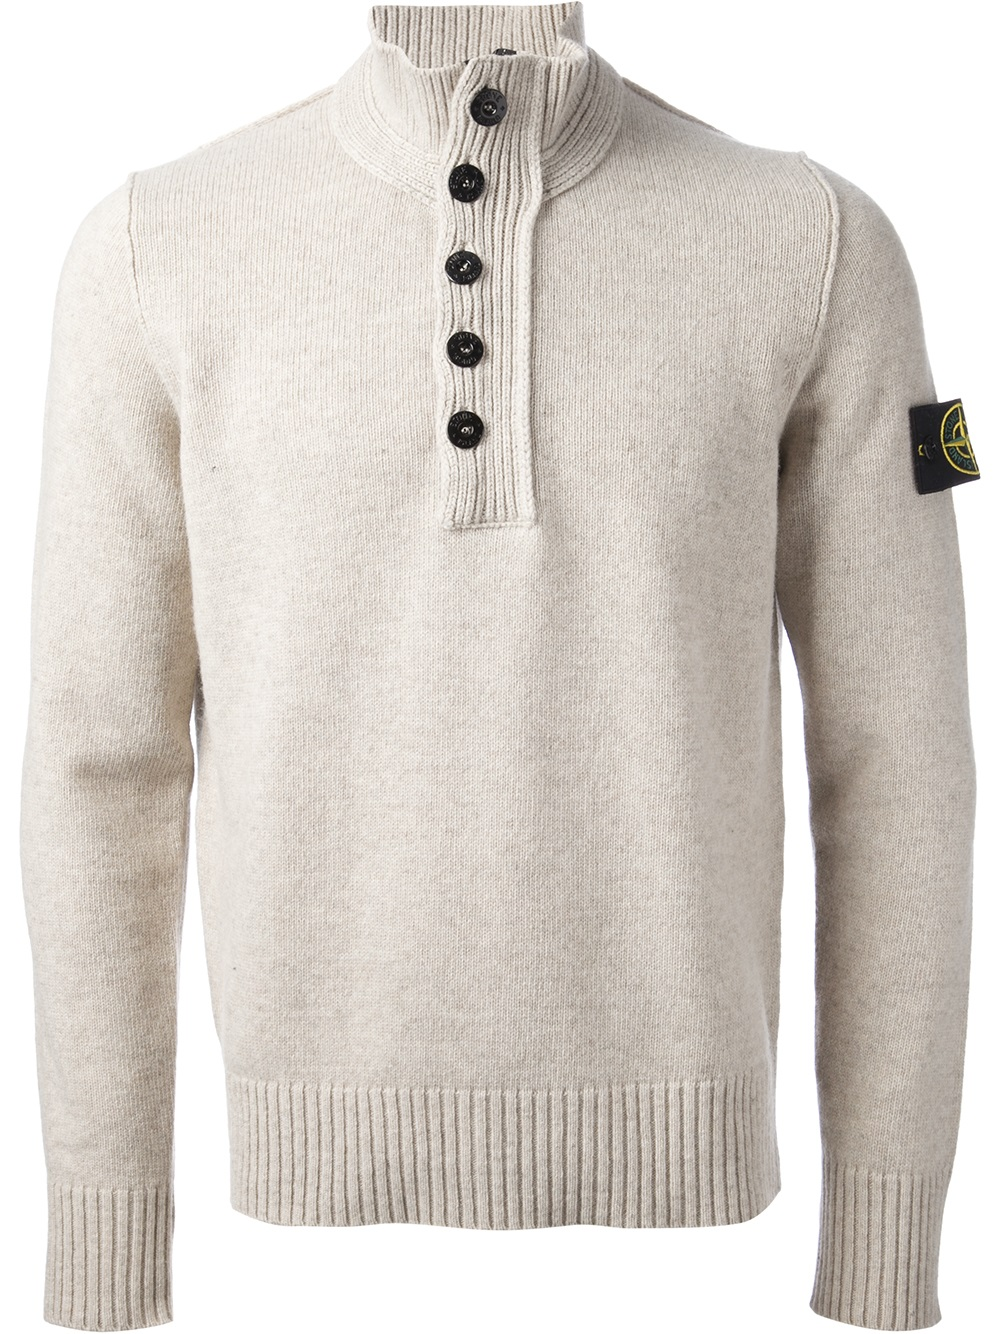 stone island button collar sweater in natural for men lyst. Black Bedroom Furniture Sets. Home Design Ideas